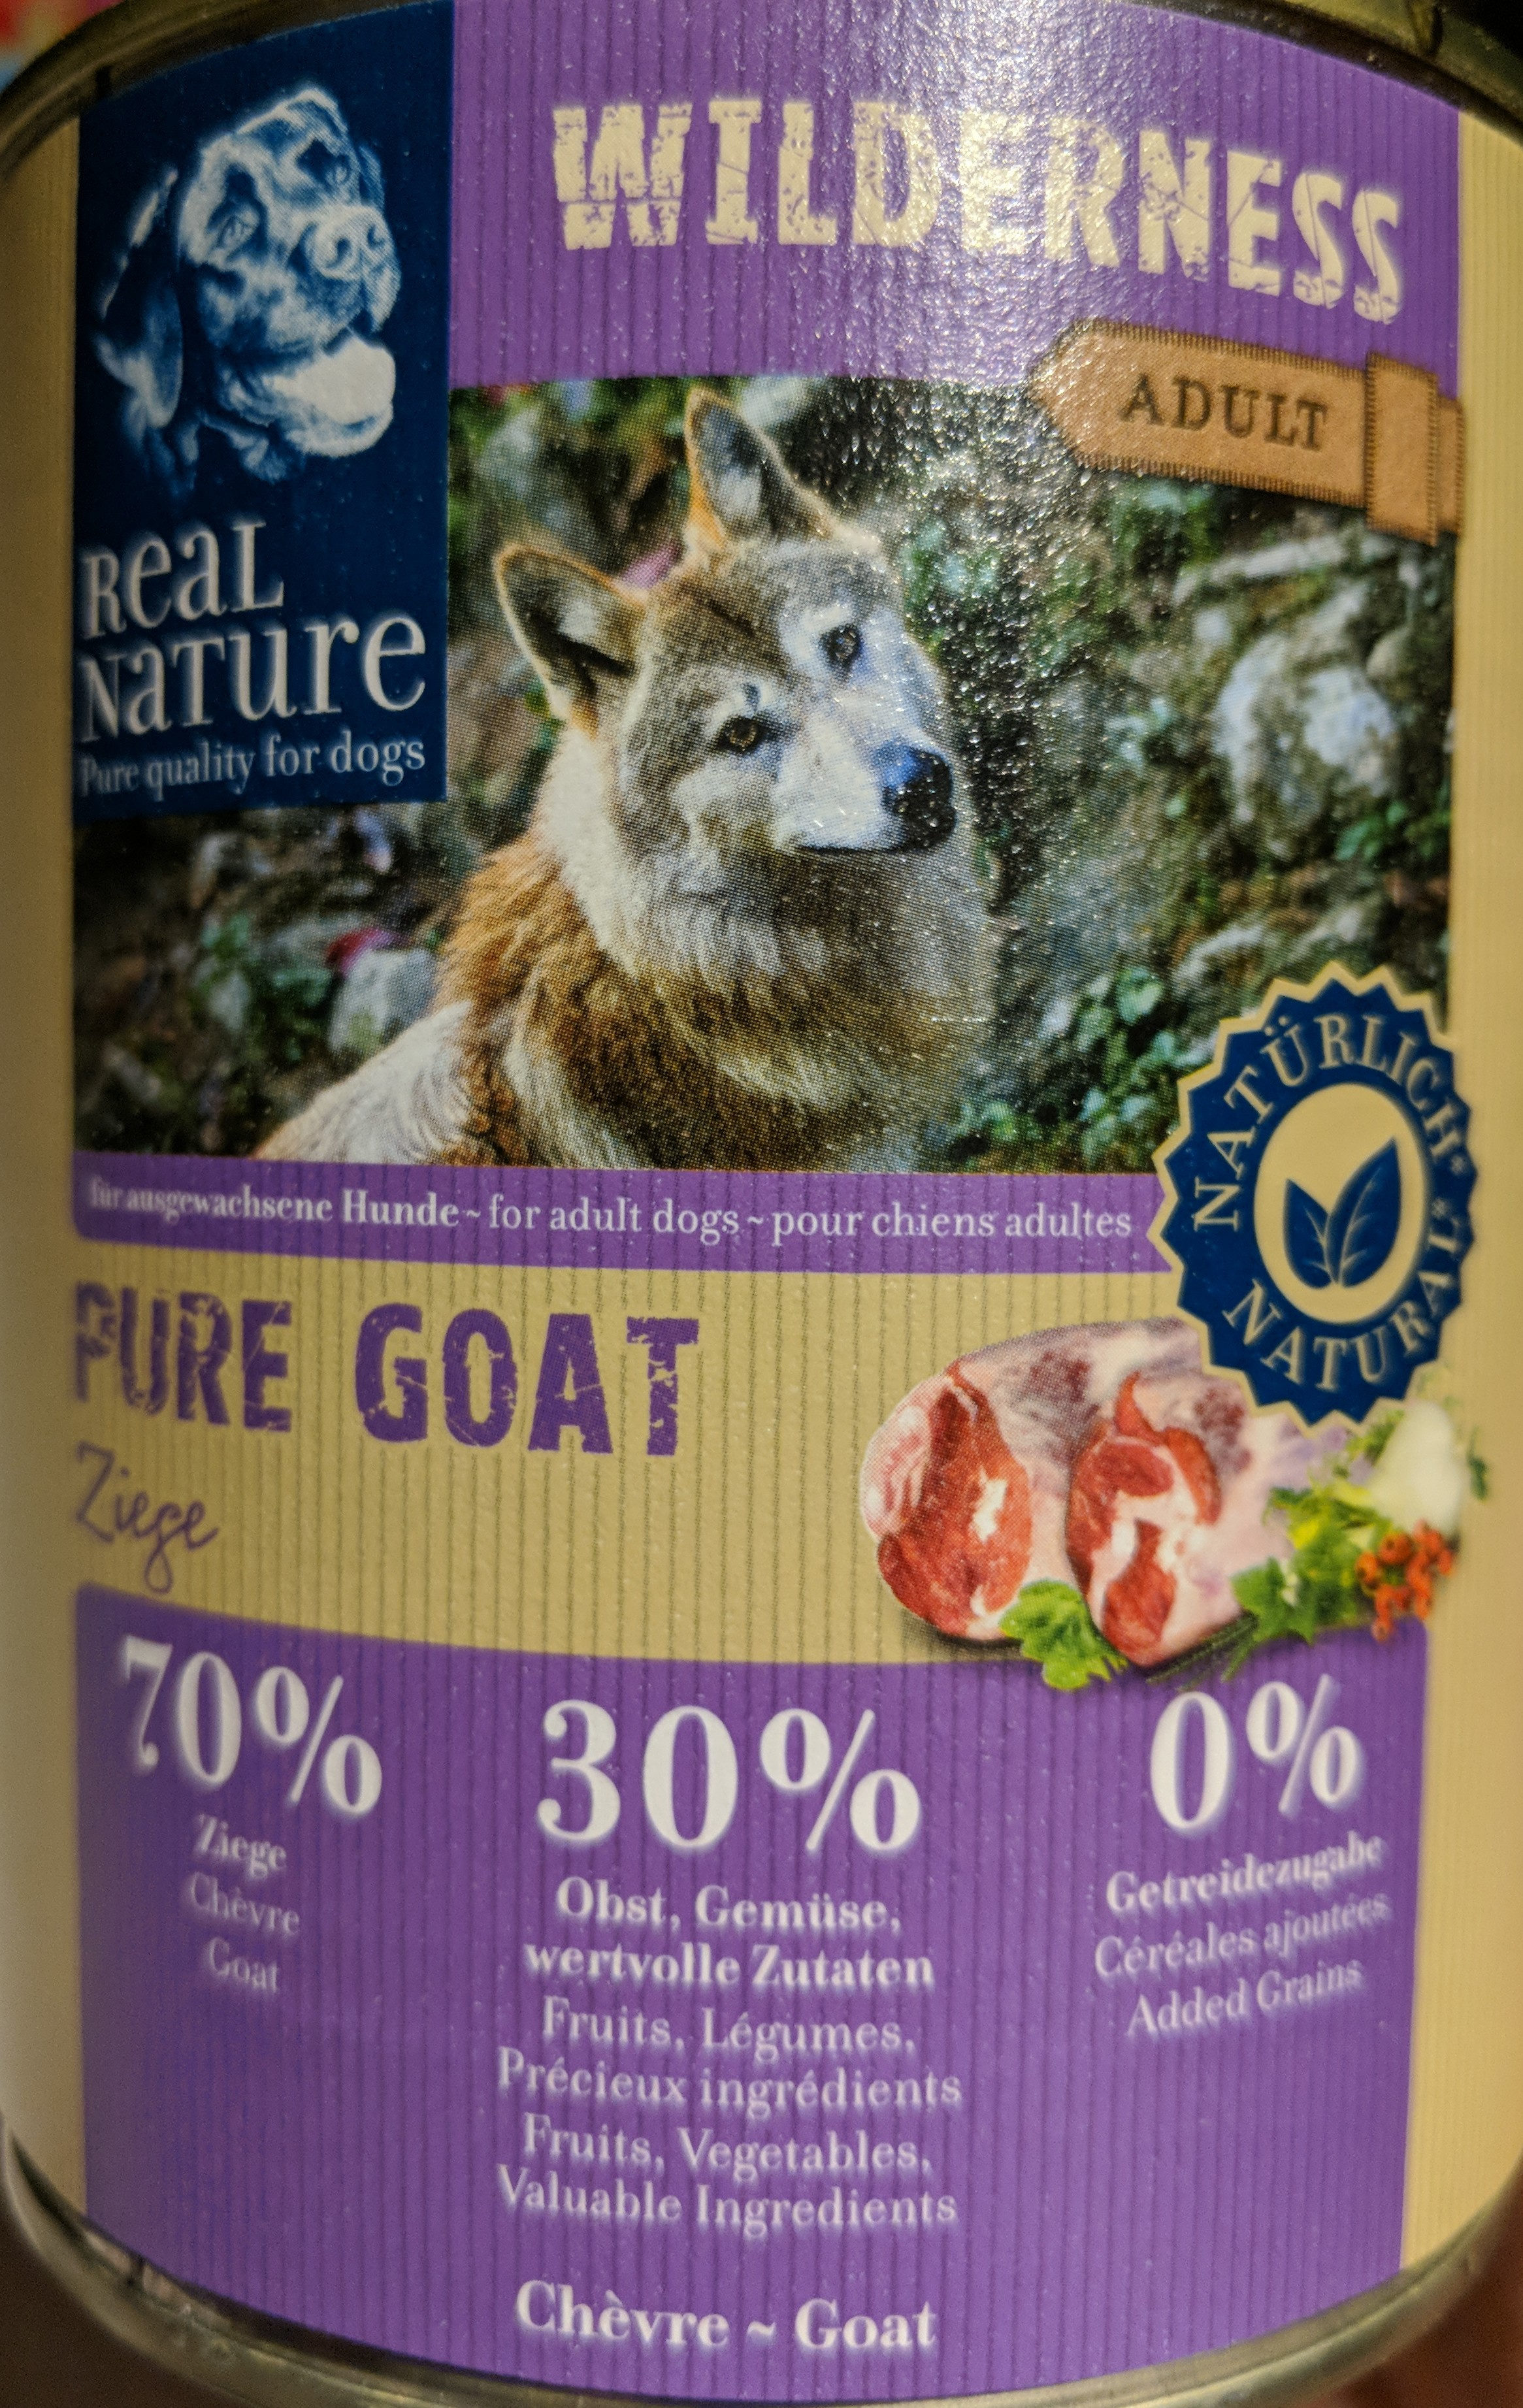 Pure Goat - Product - fr